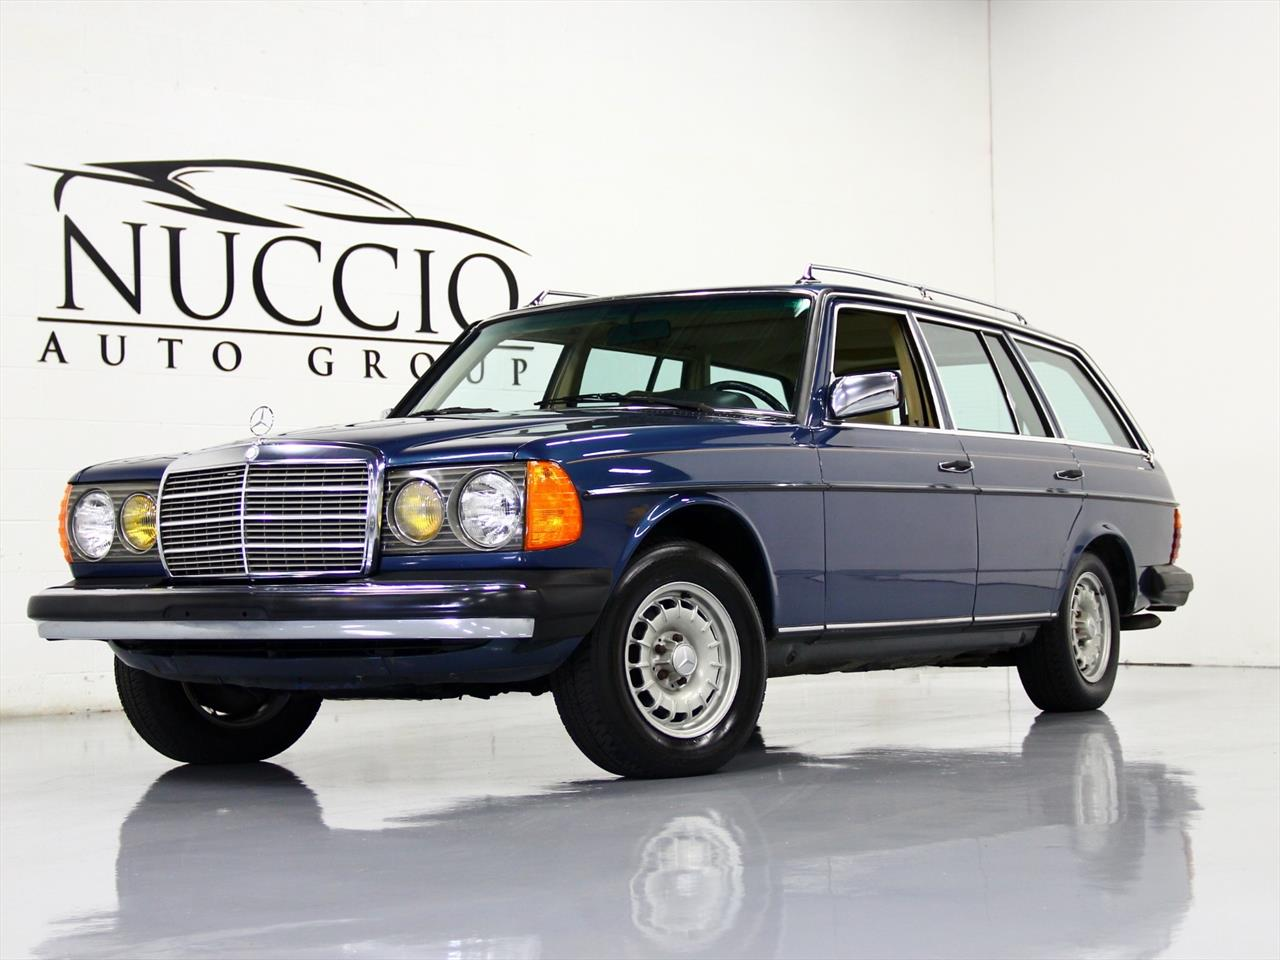 1983 mercedes benz 300td turbo diesel station wagon for Mercedes benz diesel wagon